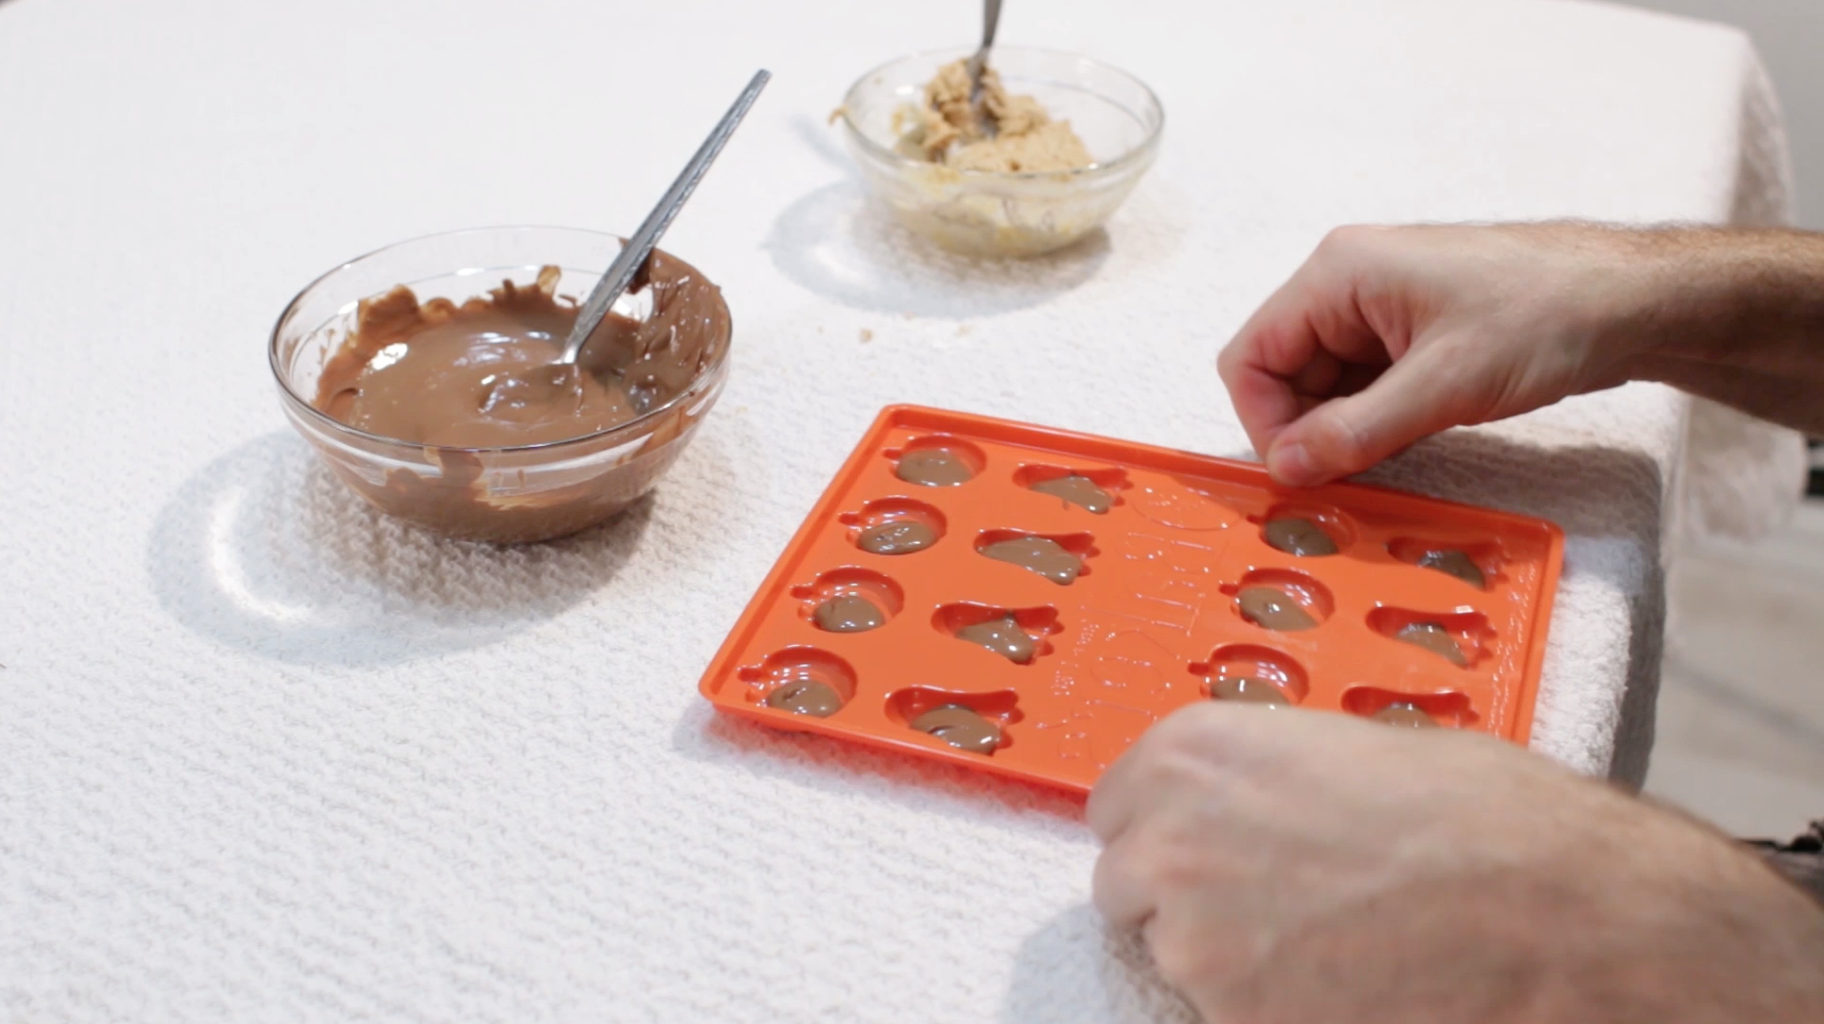 Fill in the Molds